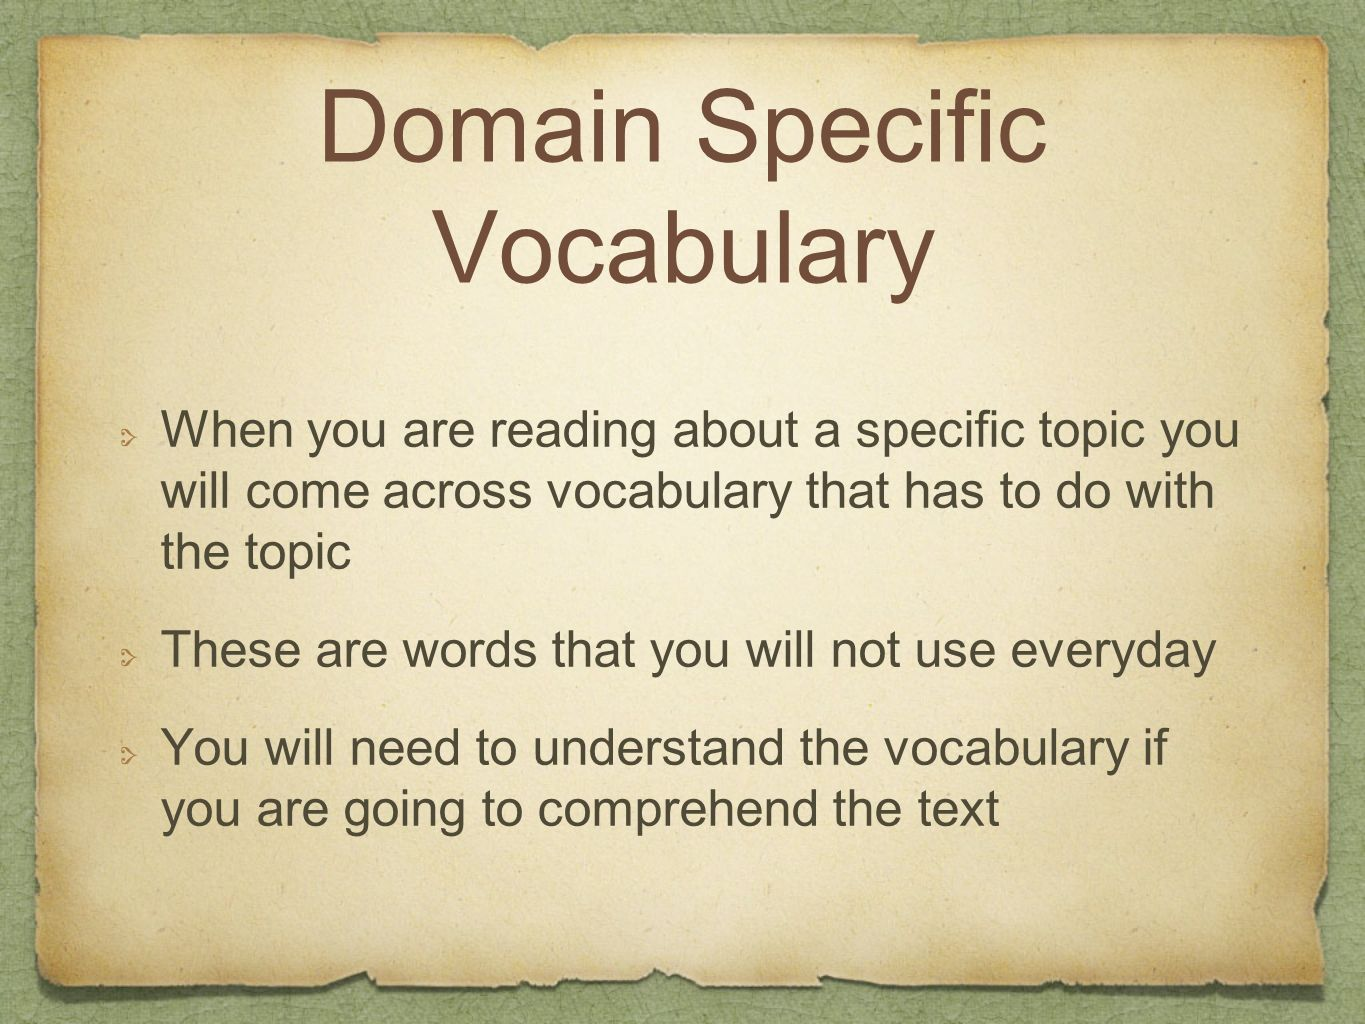 Domain Specific Vocabulary